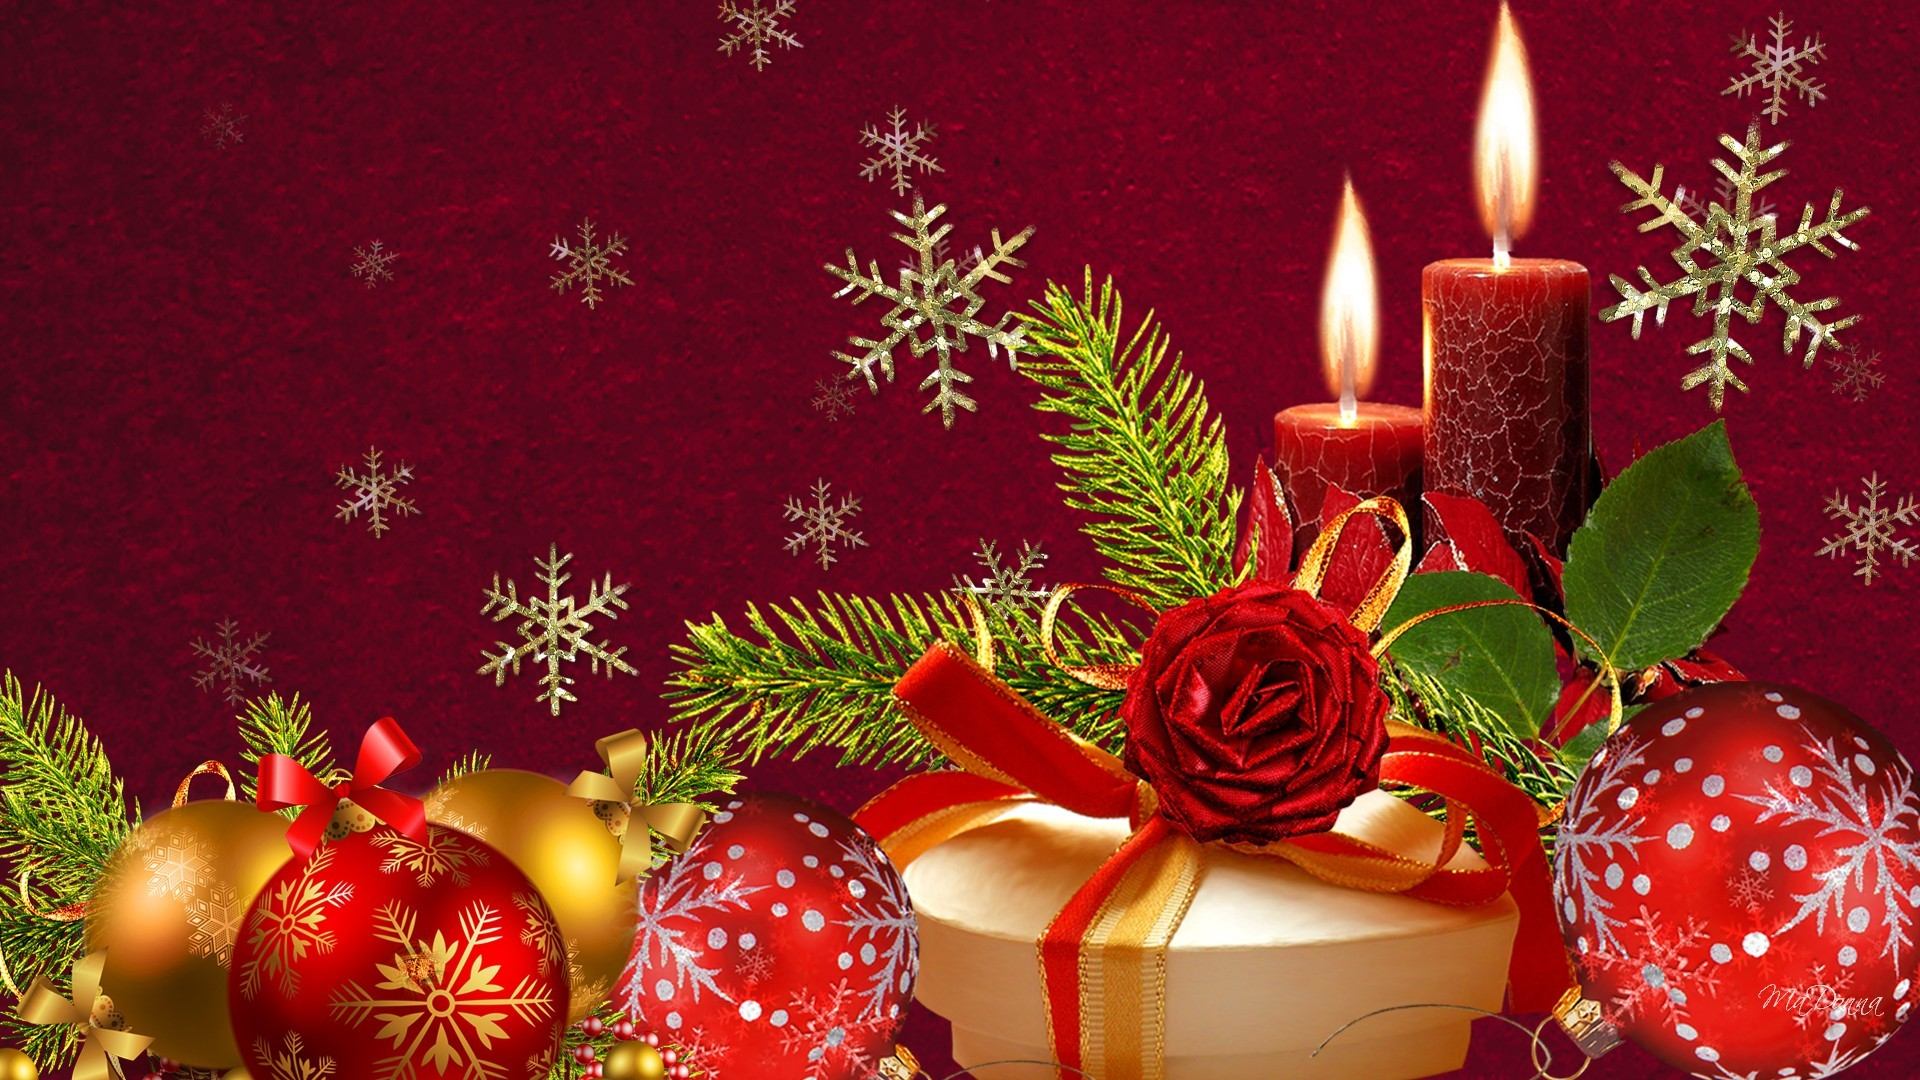 Merry Christmas Images – HD Wallpapers Backgrounds of Your Choice